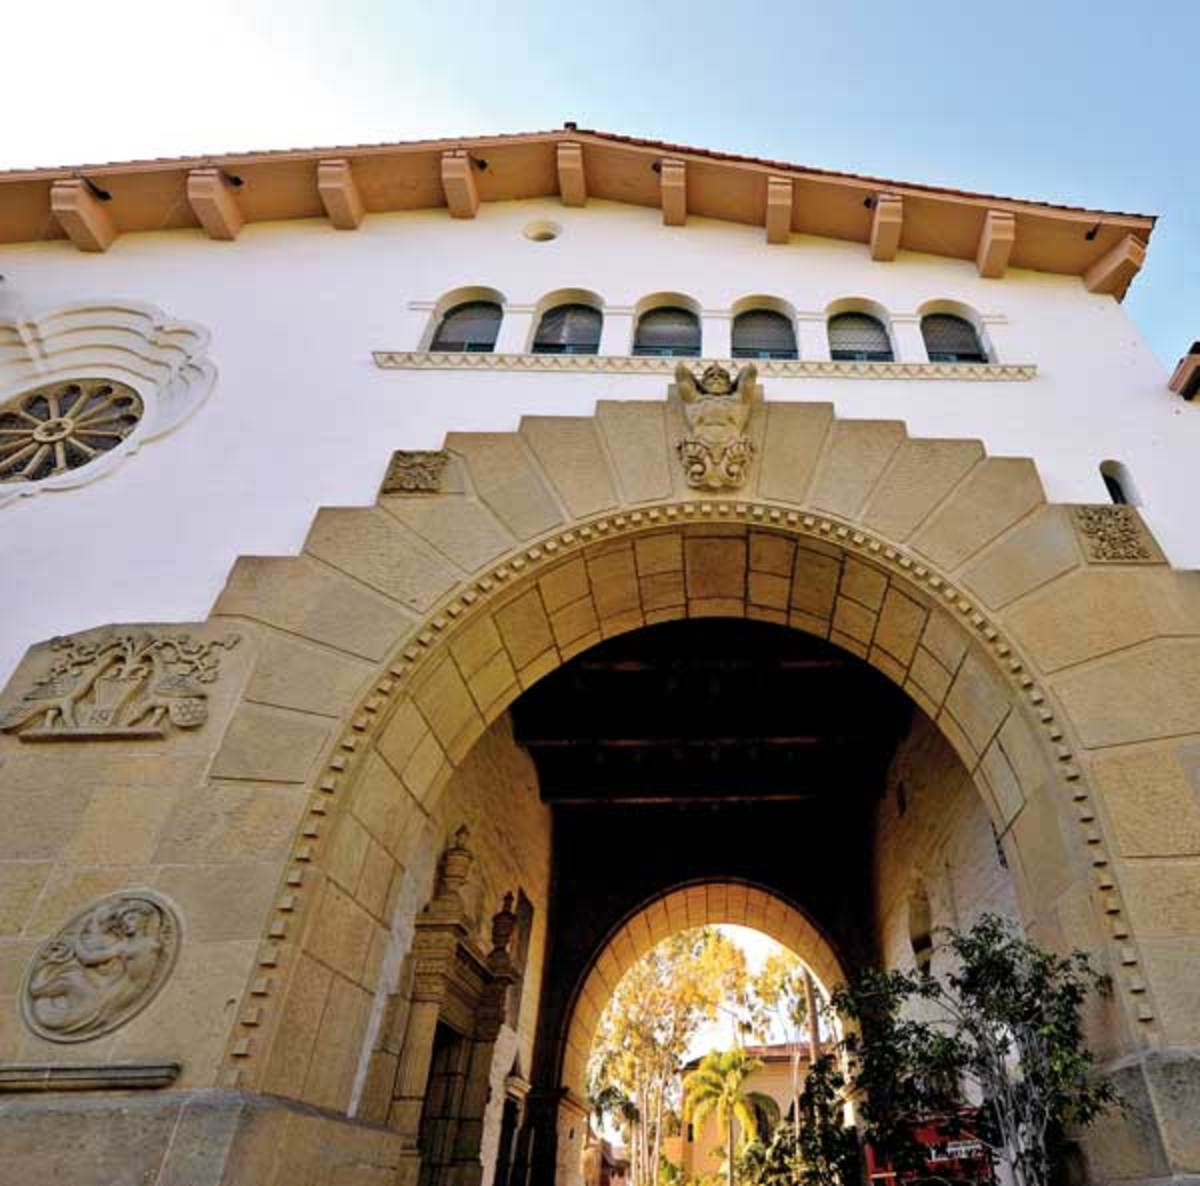 Santa Barbara Courthouse arch, Arts & Crafts movement in California